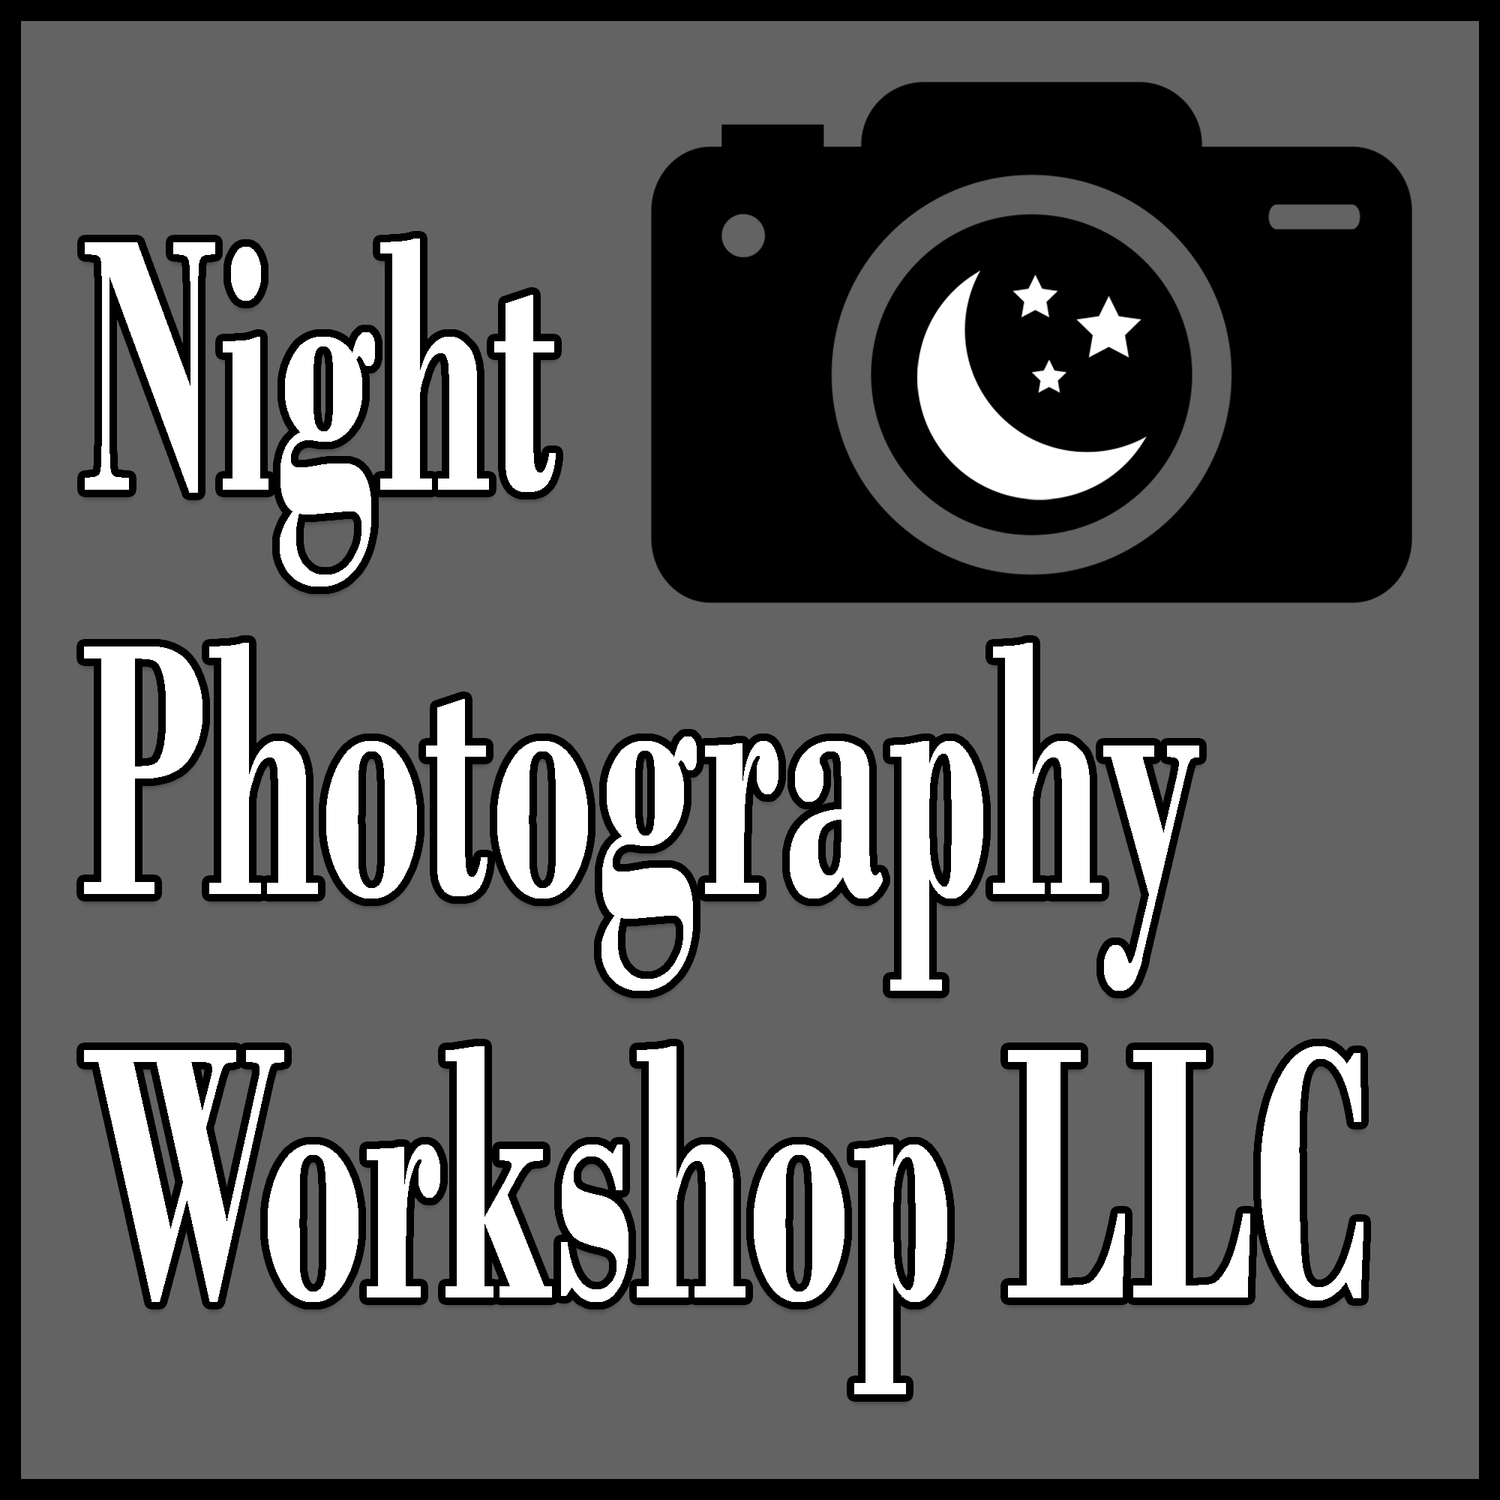 Night Photography Workshop LLC